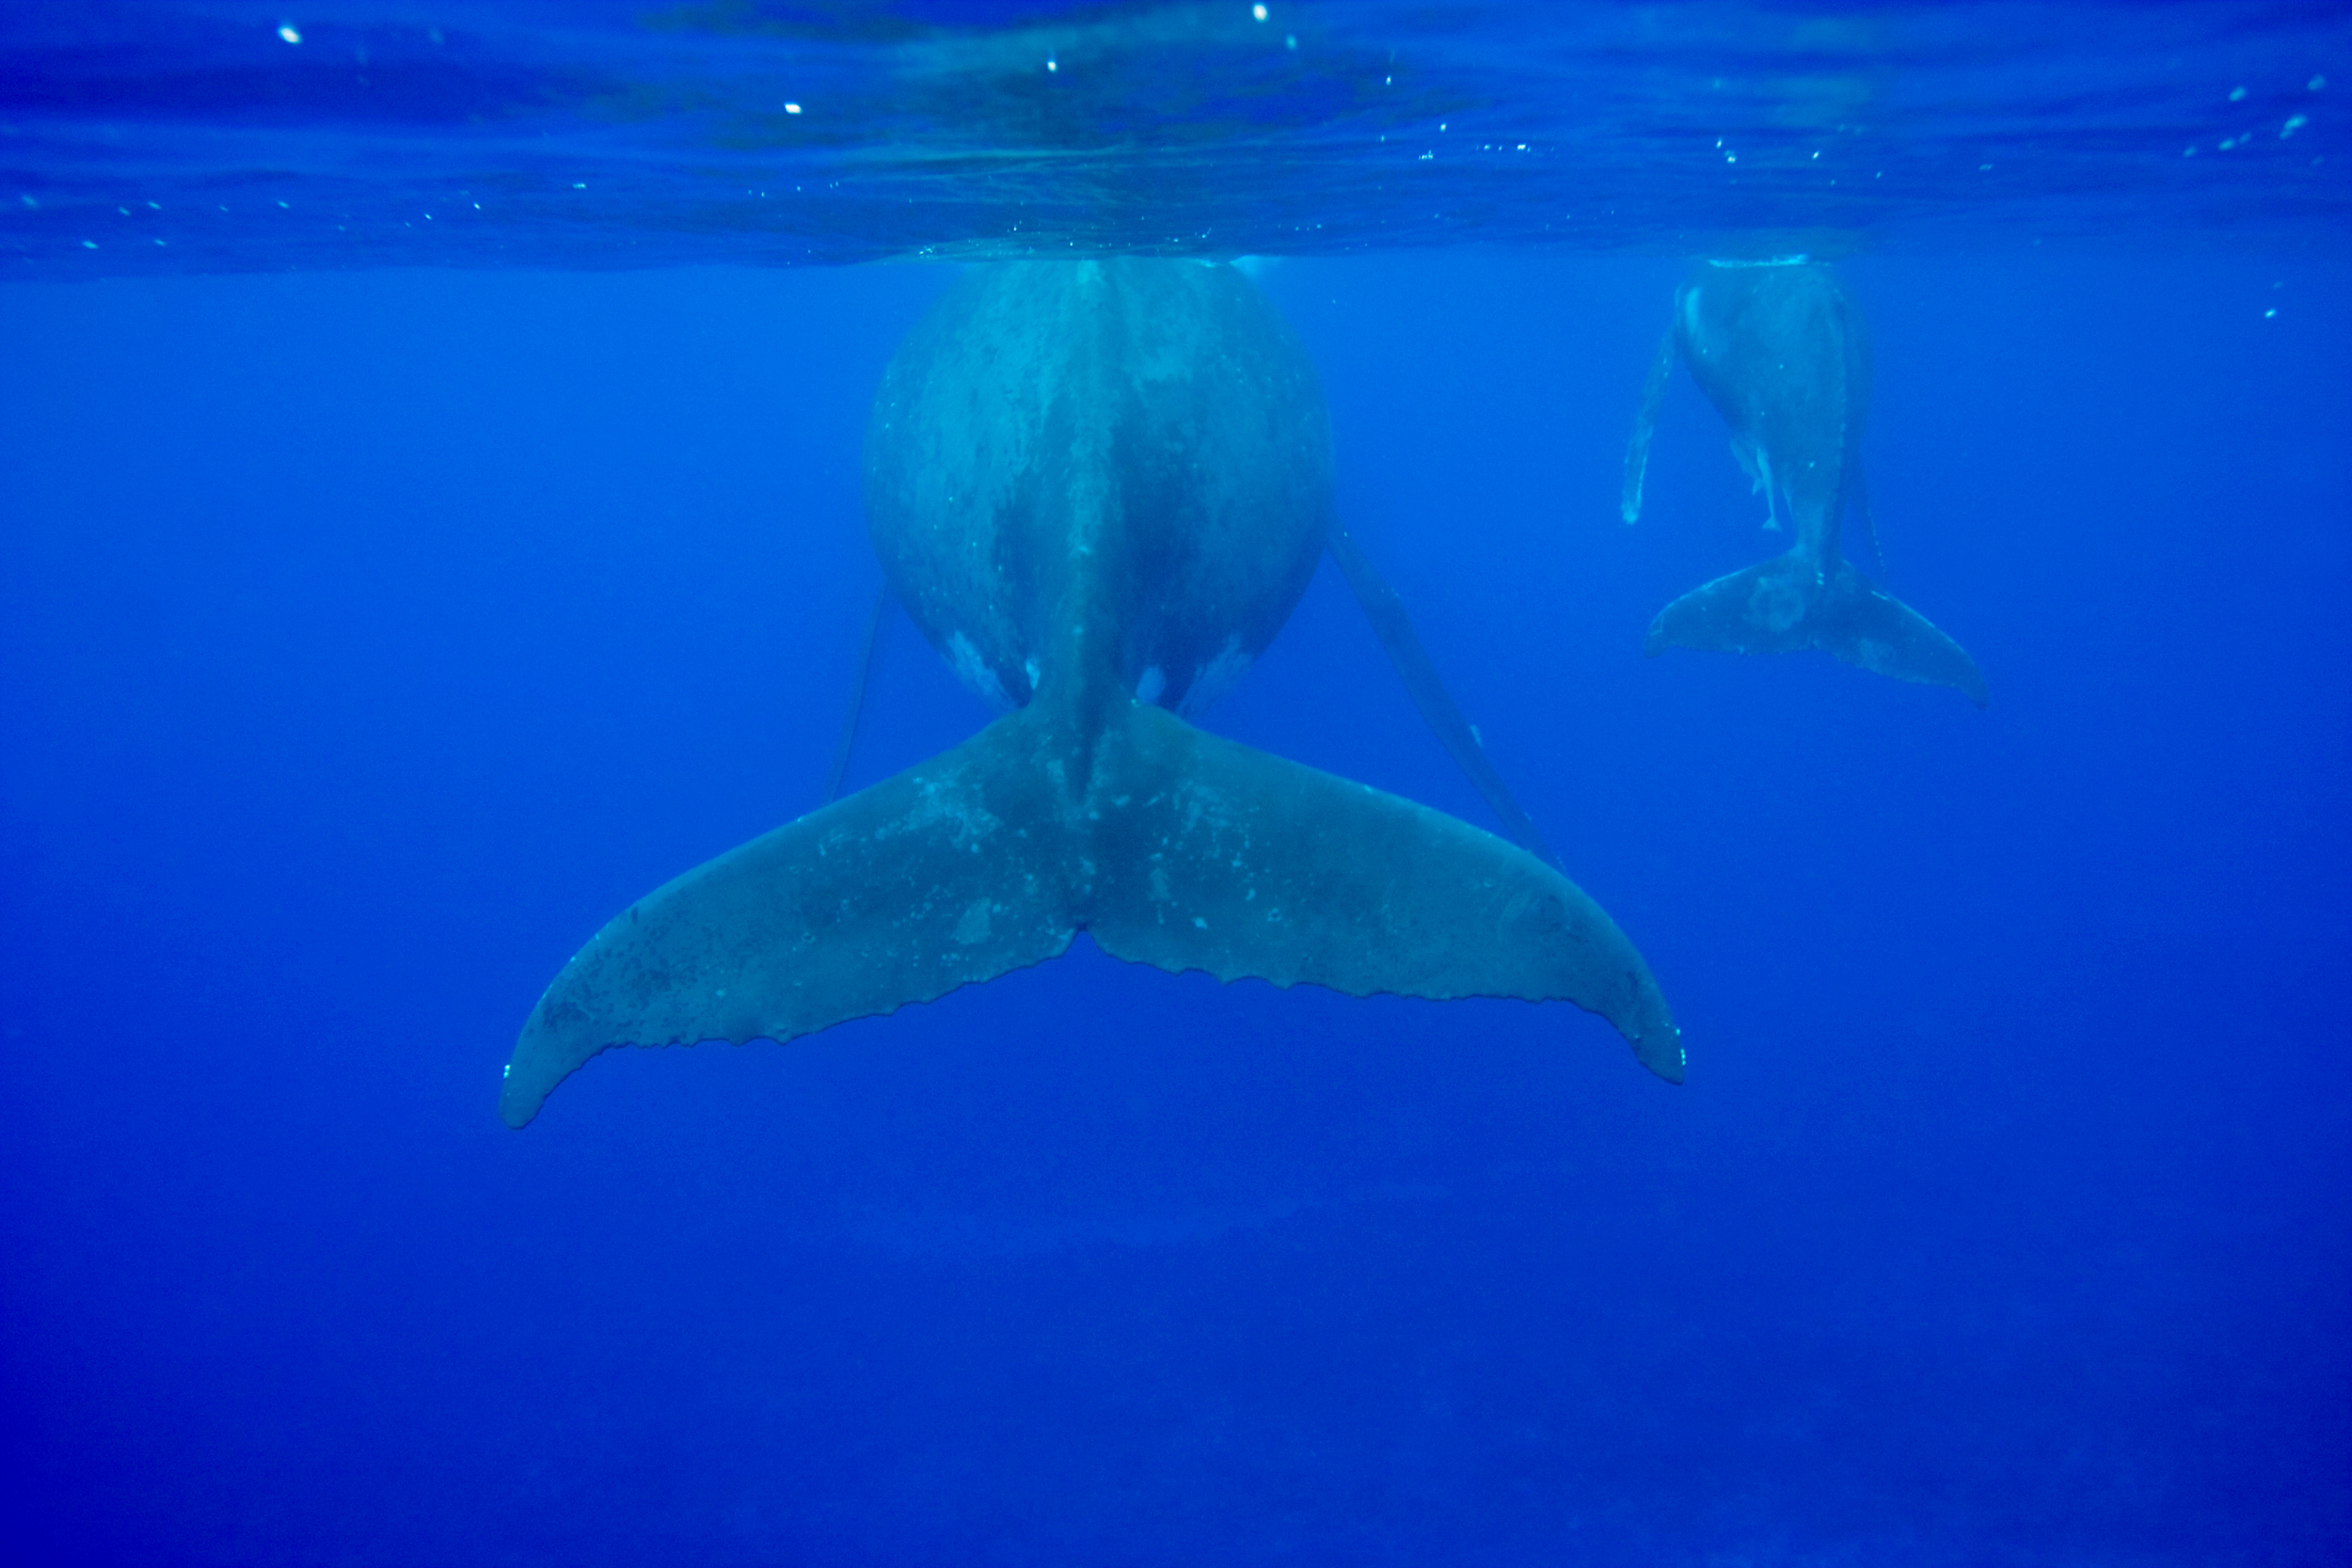 whale fin under water